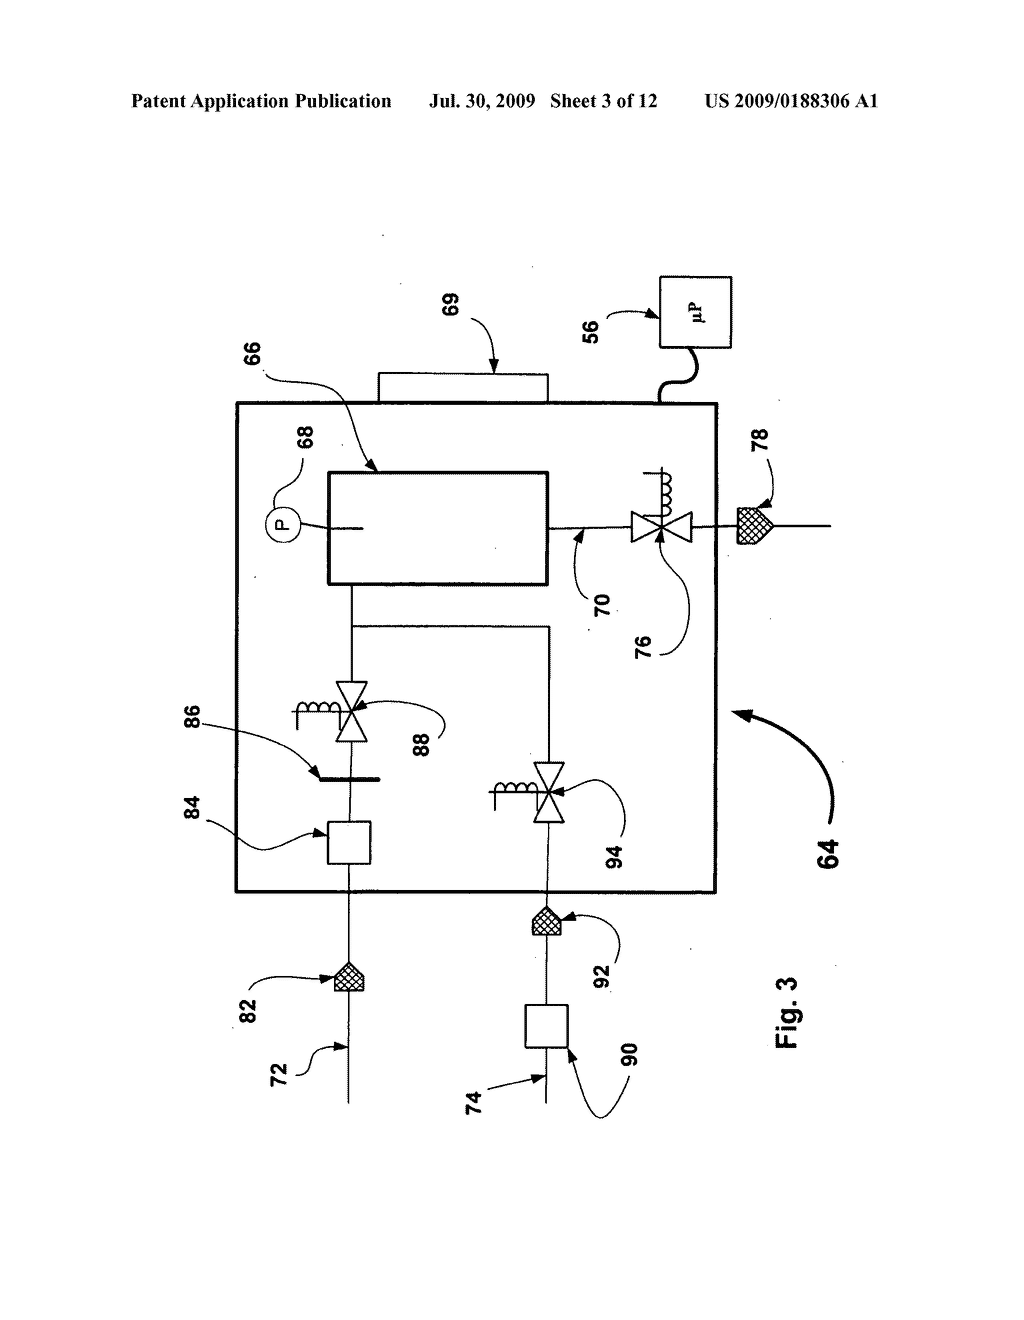 hight resolution of reid vapor pressure analyzer with an air saturator diagram schematic and image 04